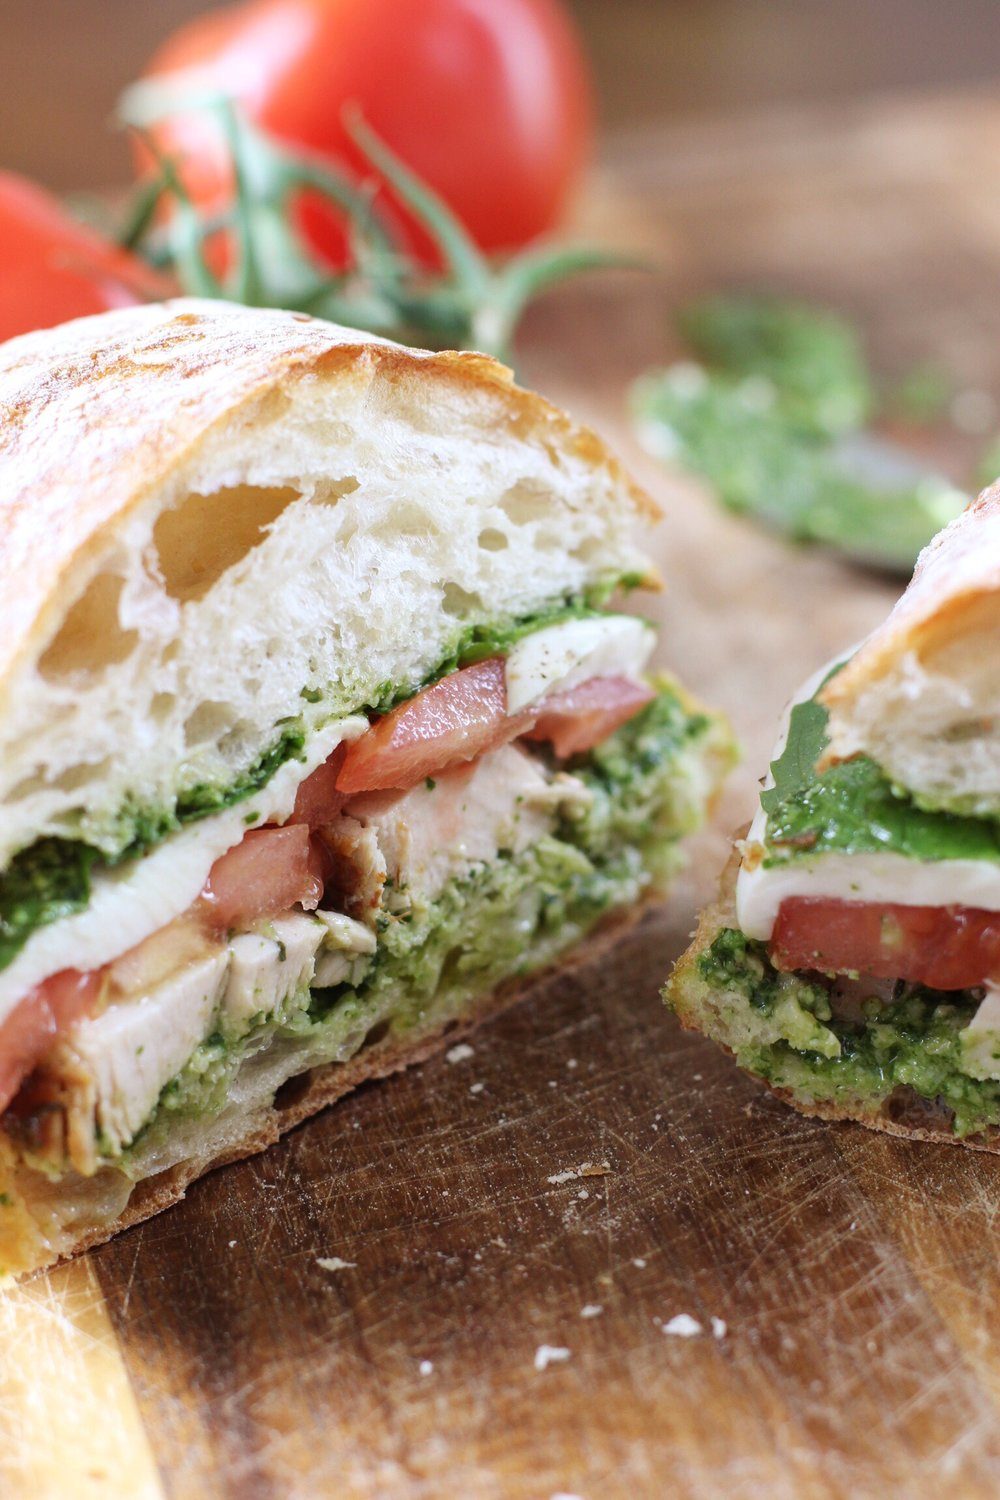 Chicken, tomato, and mozz melt with pesto